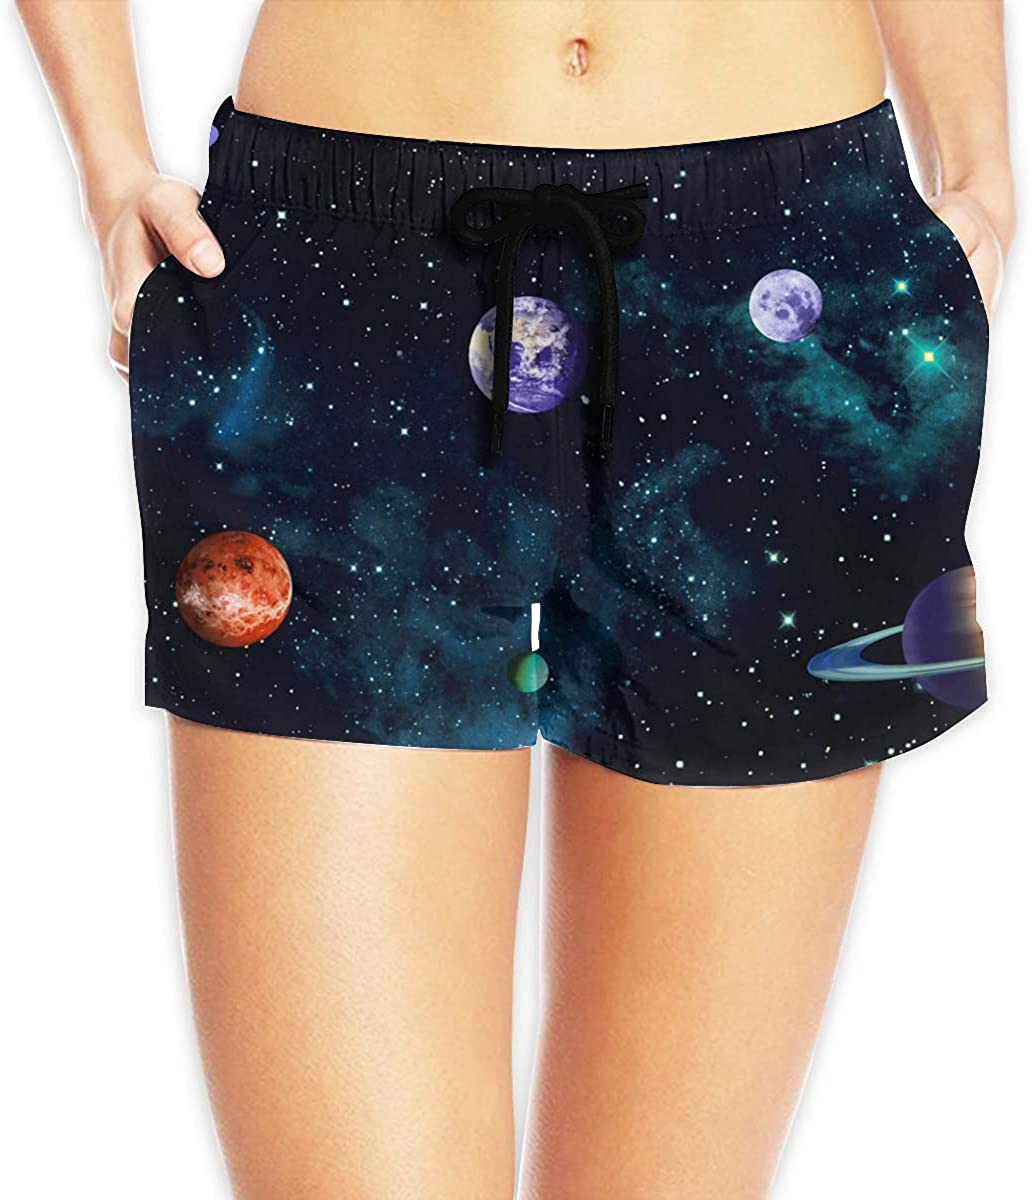 LzVong Outer Space Science Rocket Women's Female Beach Pants Summer Beachwear Board Shorts